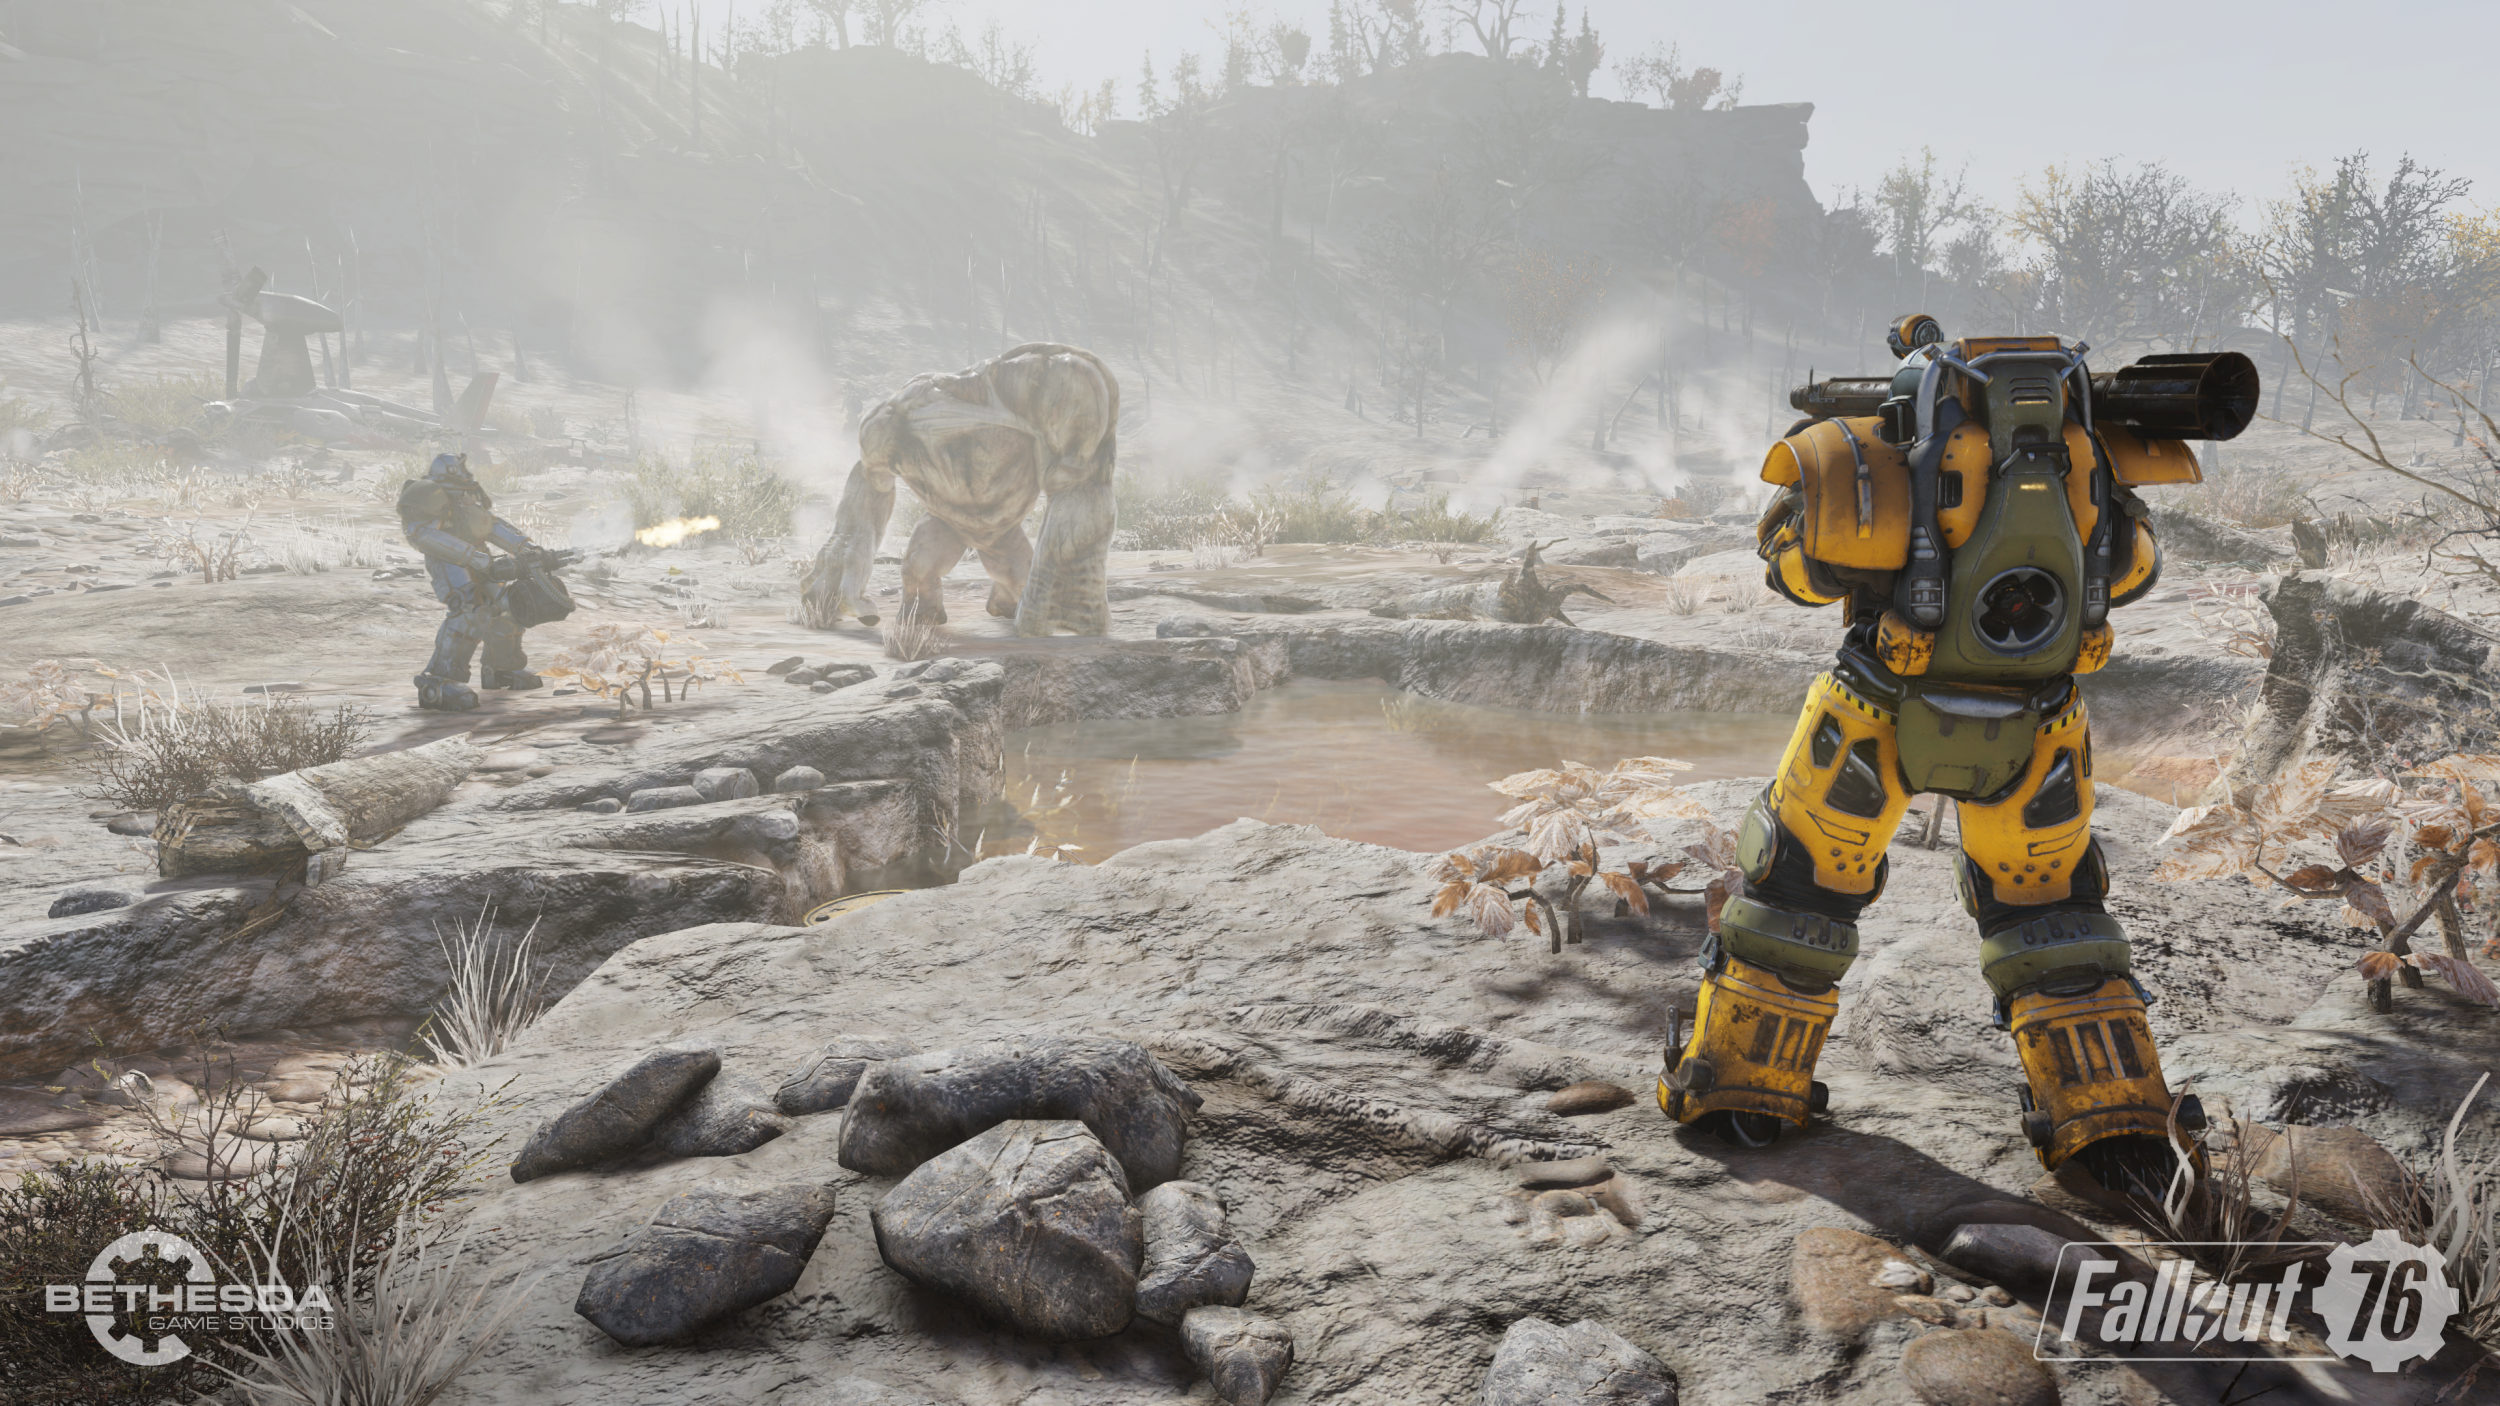 Fallout 76 Power Armor location guide